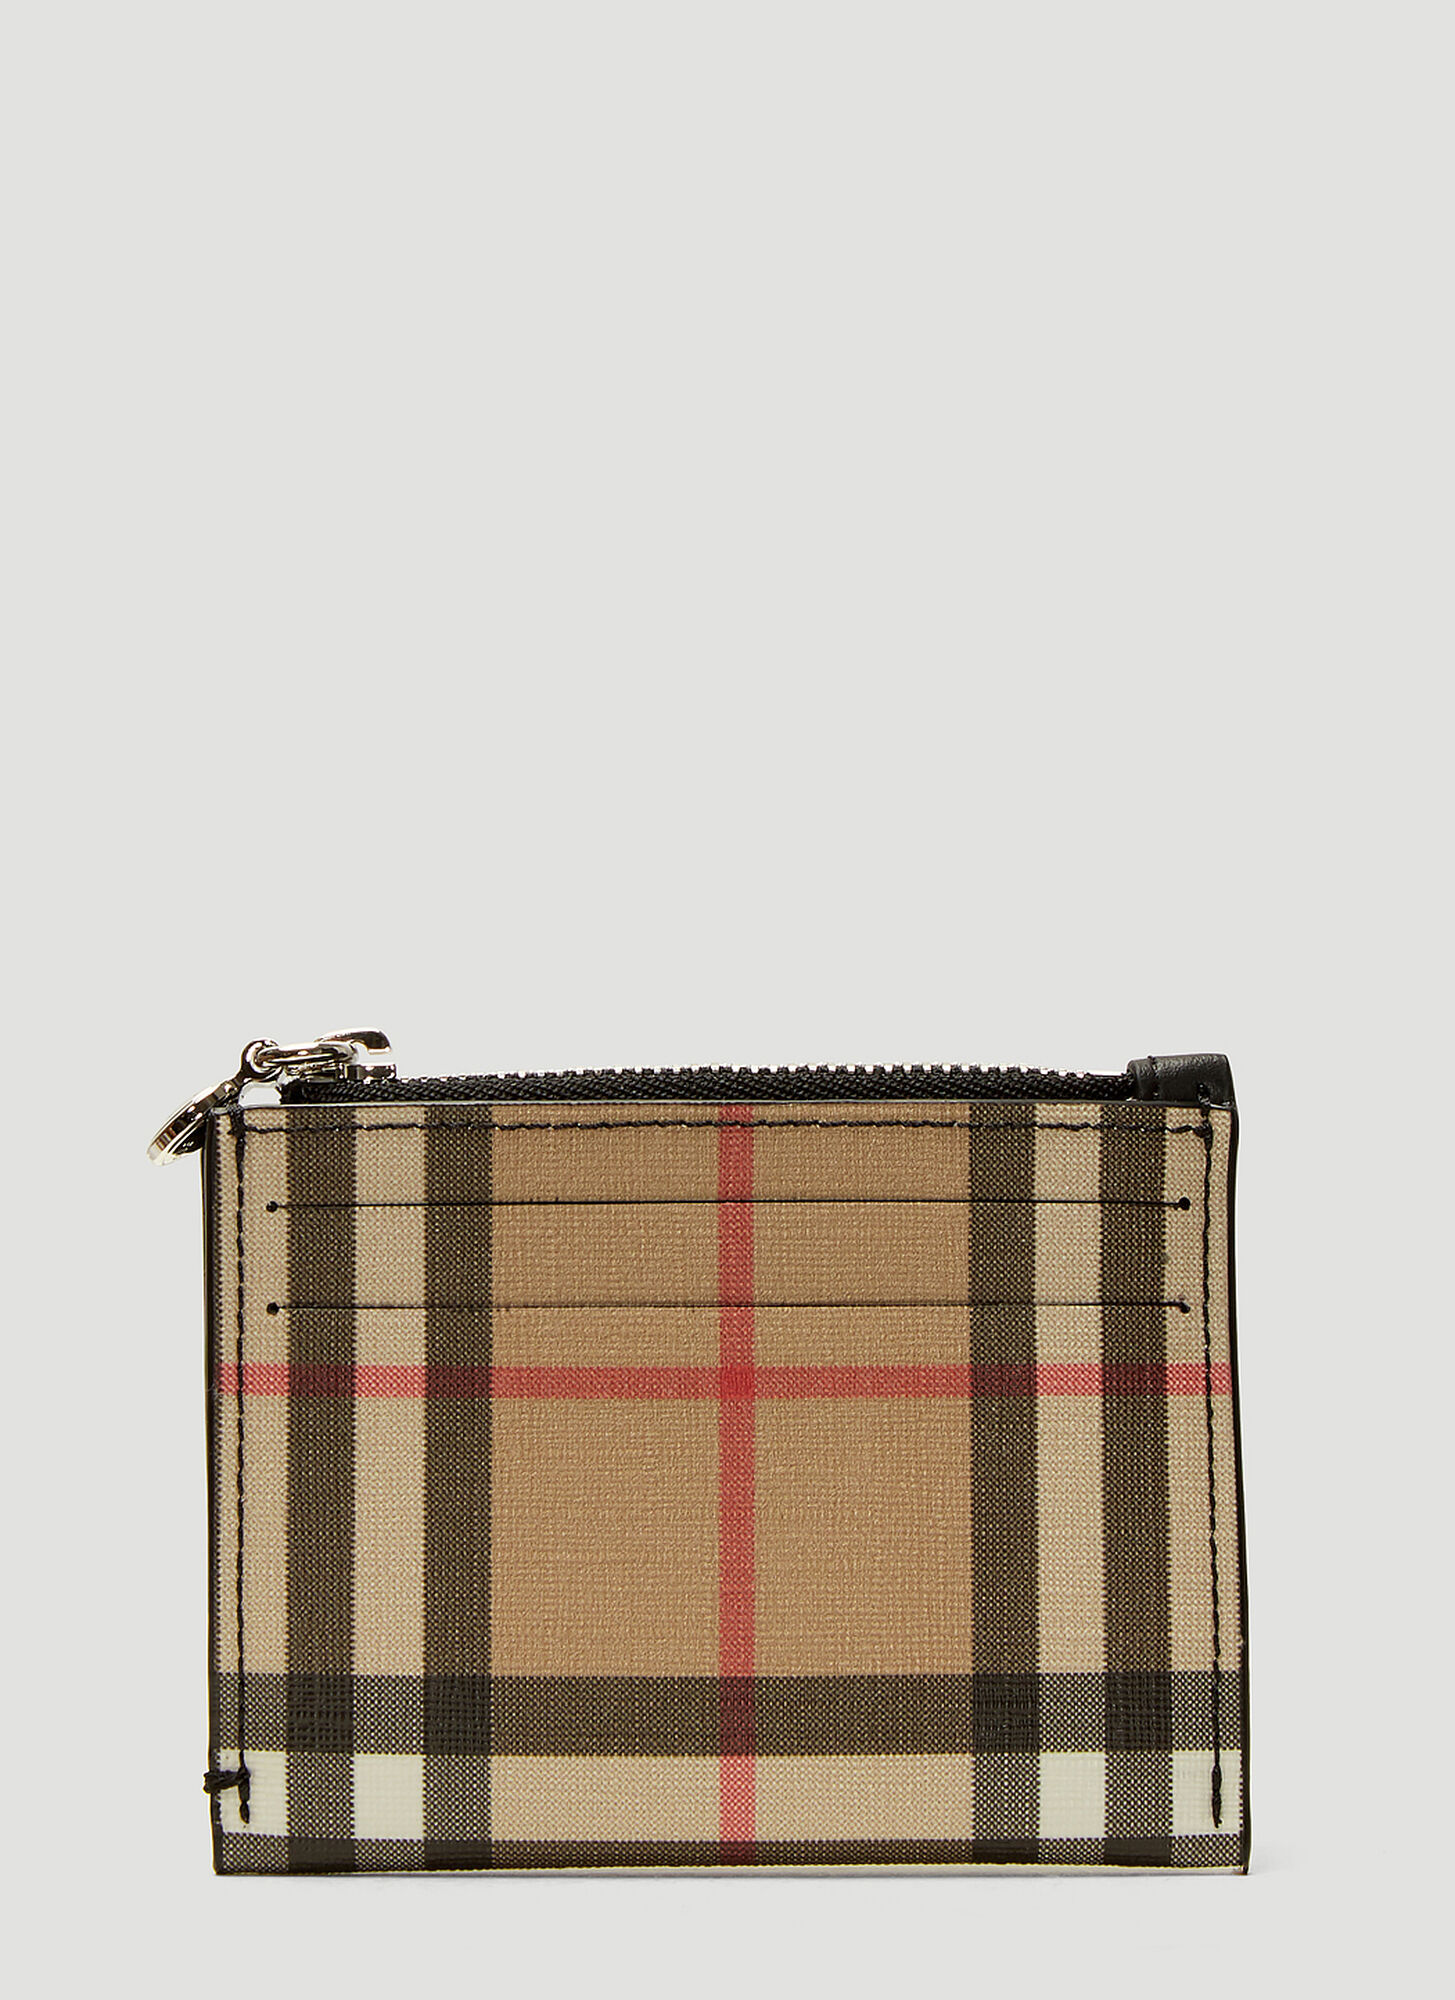 Burberry Vintage Check Zip Card Holder in Beige